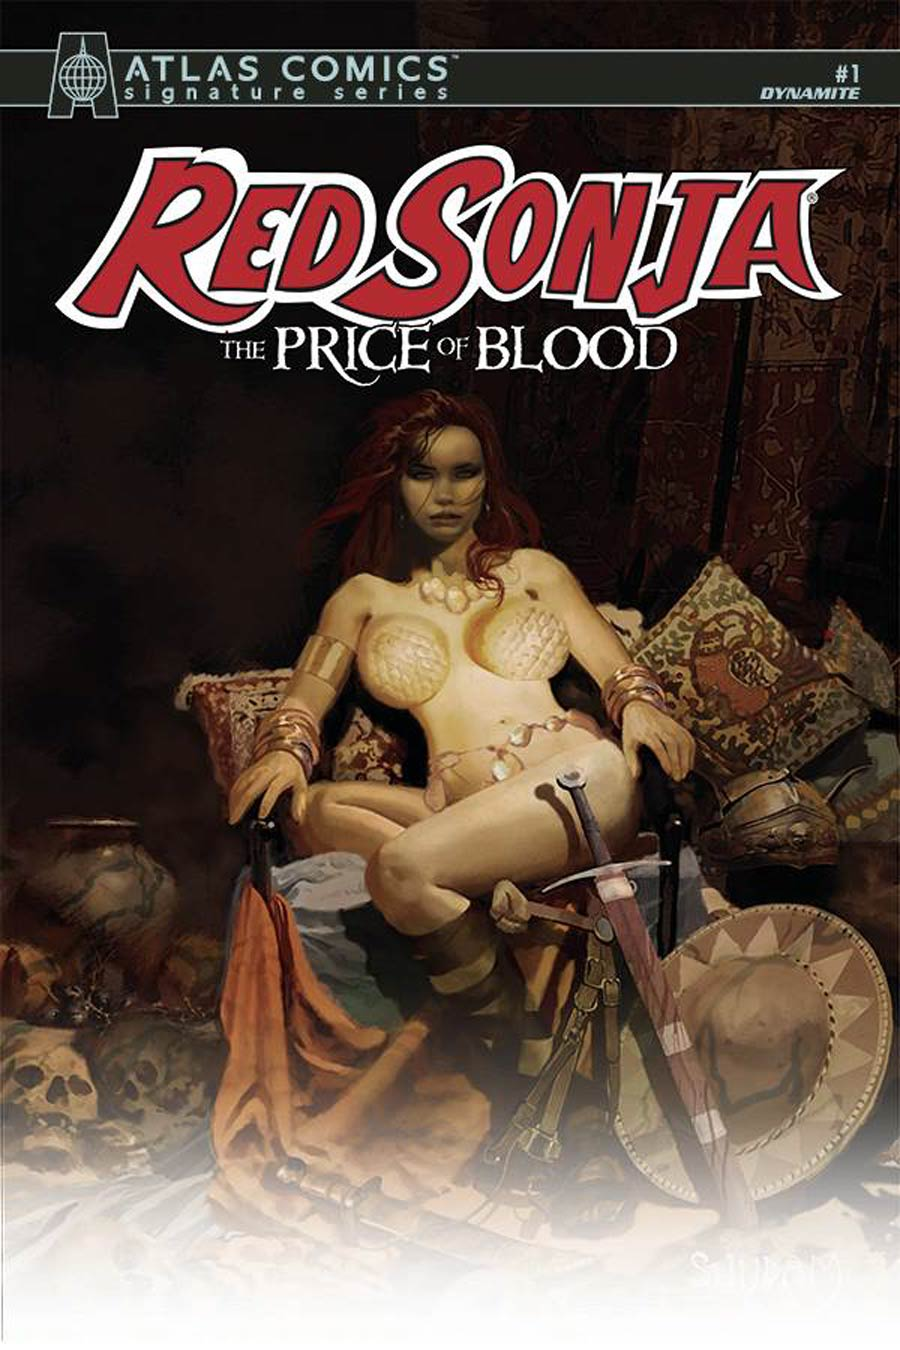 Red Sonja Price Of Blood #1 Cover S Atlas Comics Signature Series Signed By Luke Lieberman